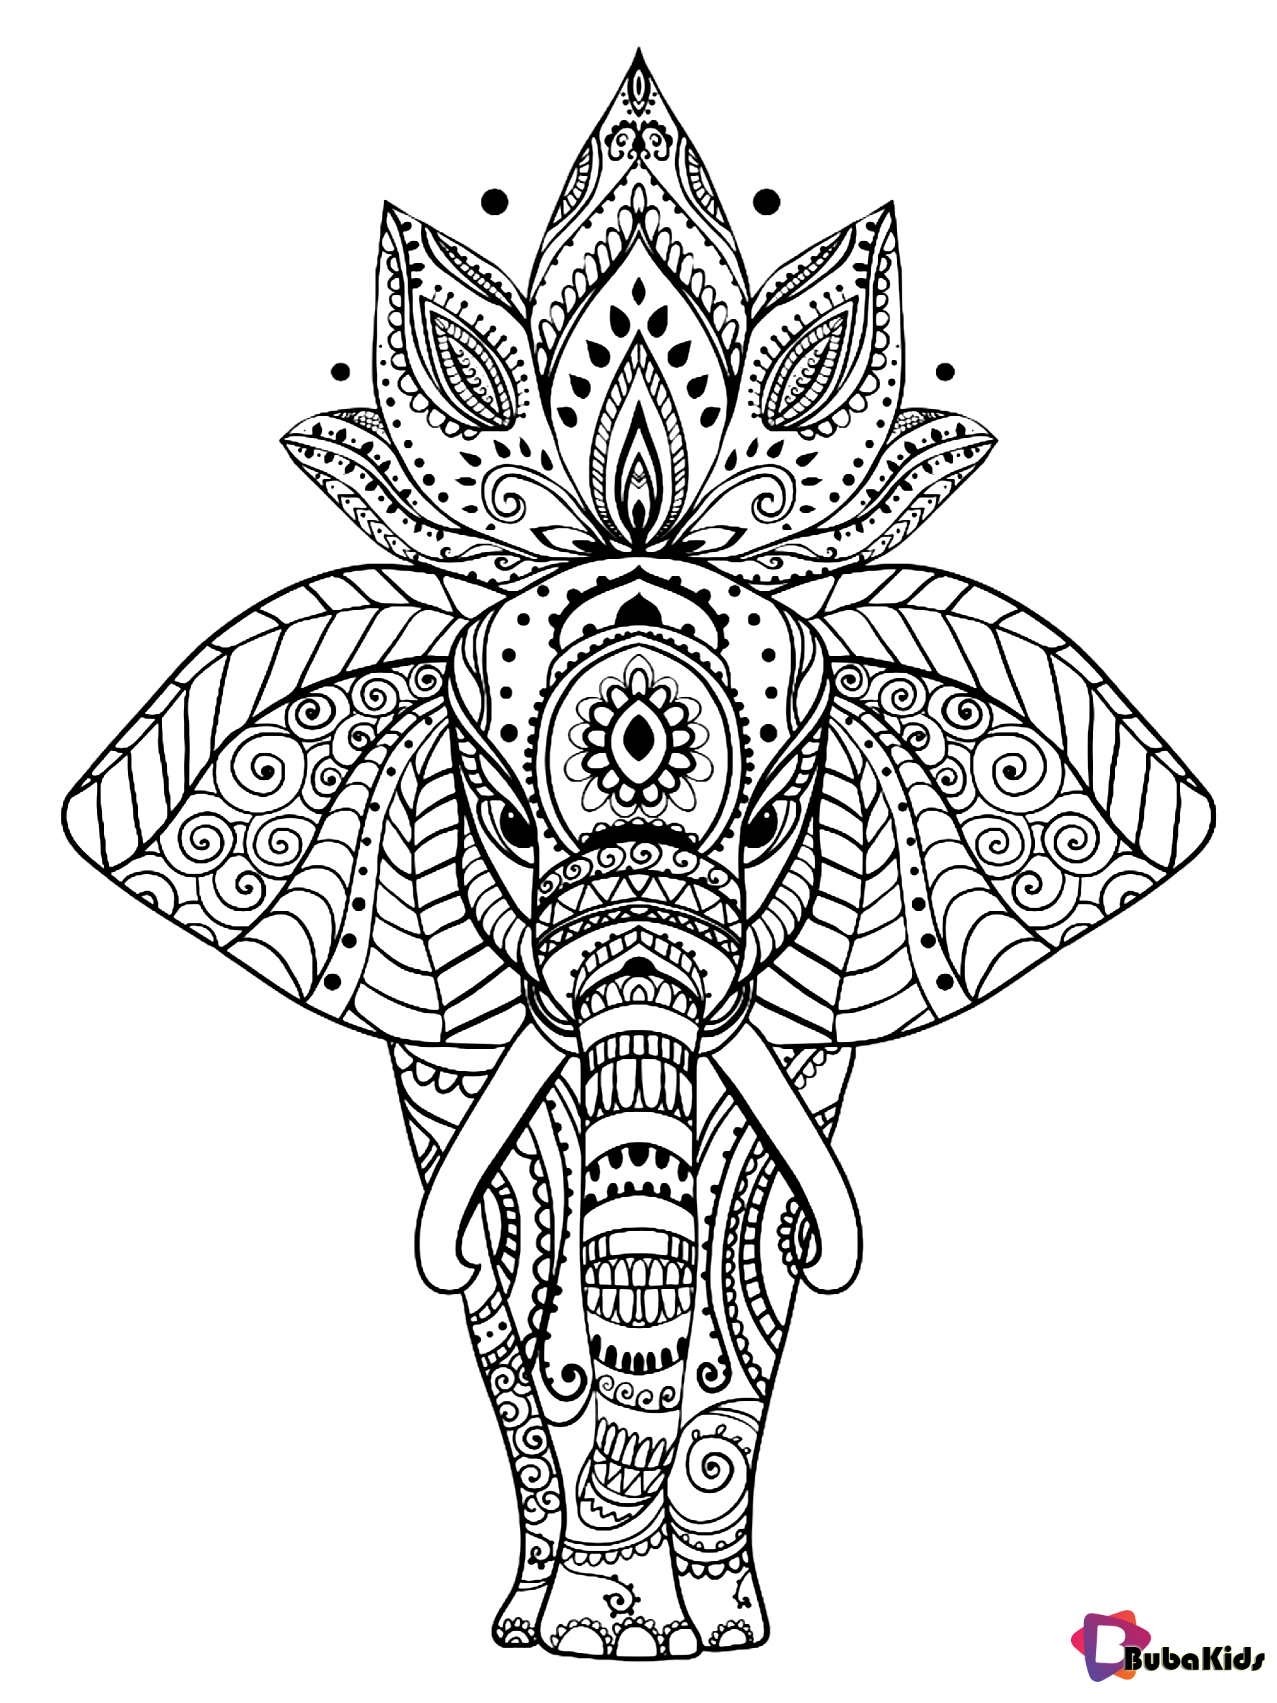 Pin By Adrian Adrian On Mandala Coloring Pages Elephant Coloring Page Mandala Coloring Pages Mandala Coloring